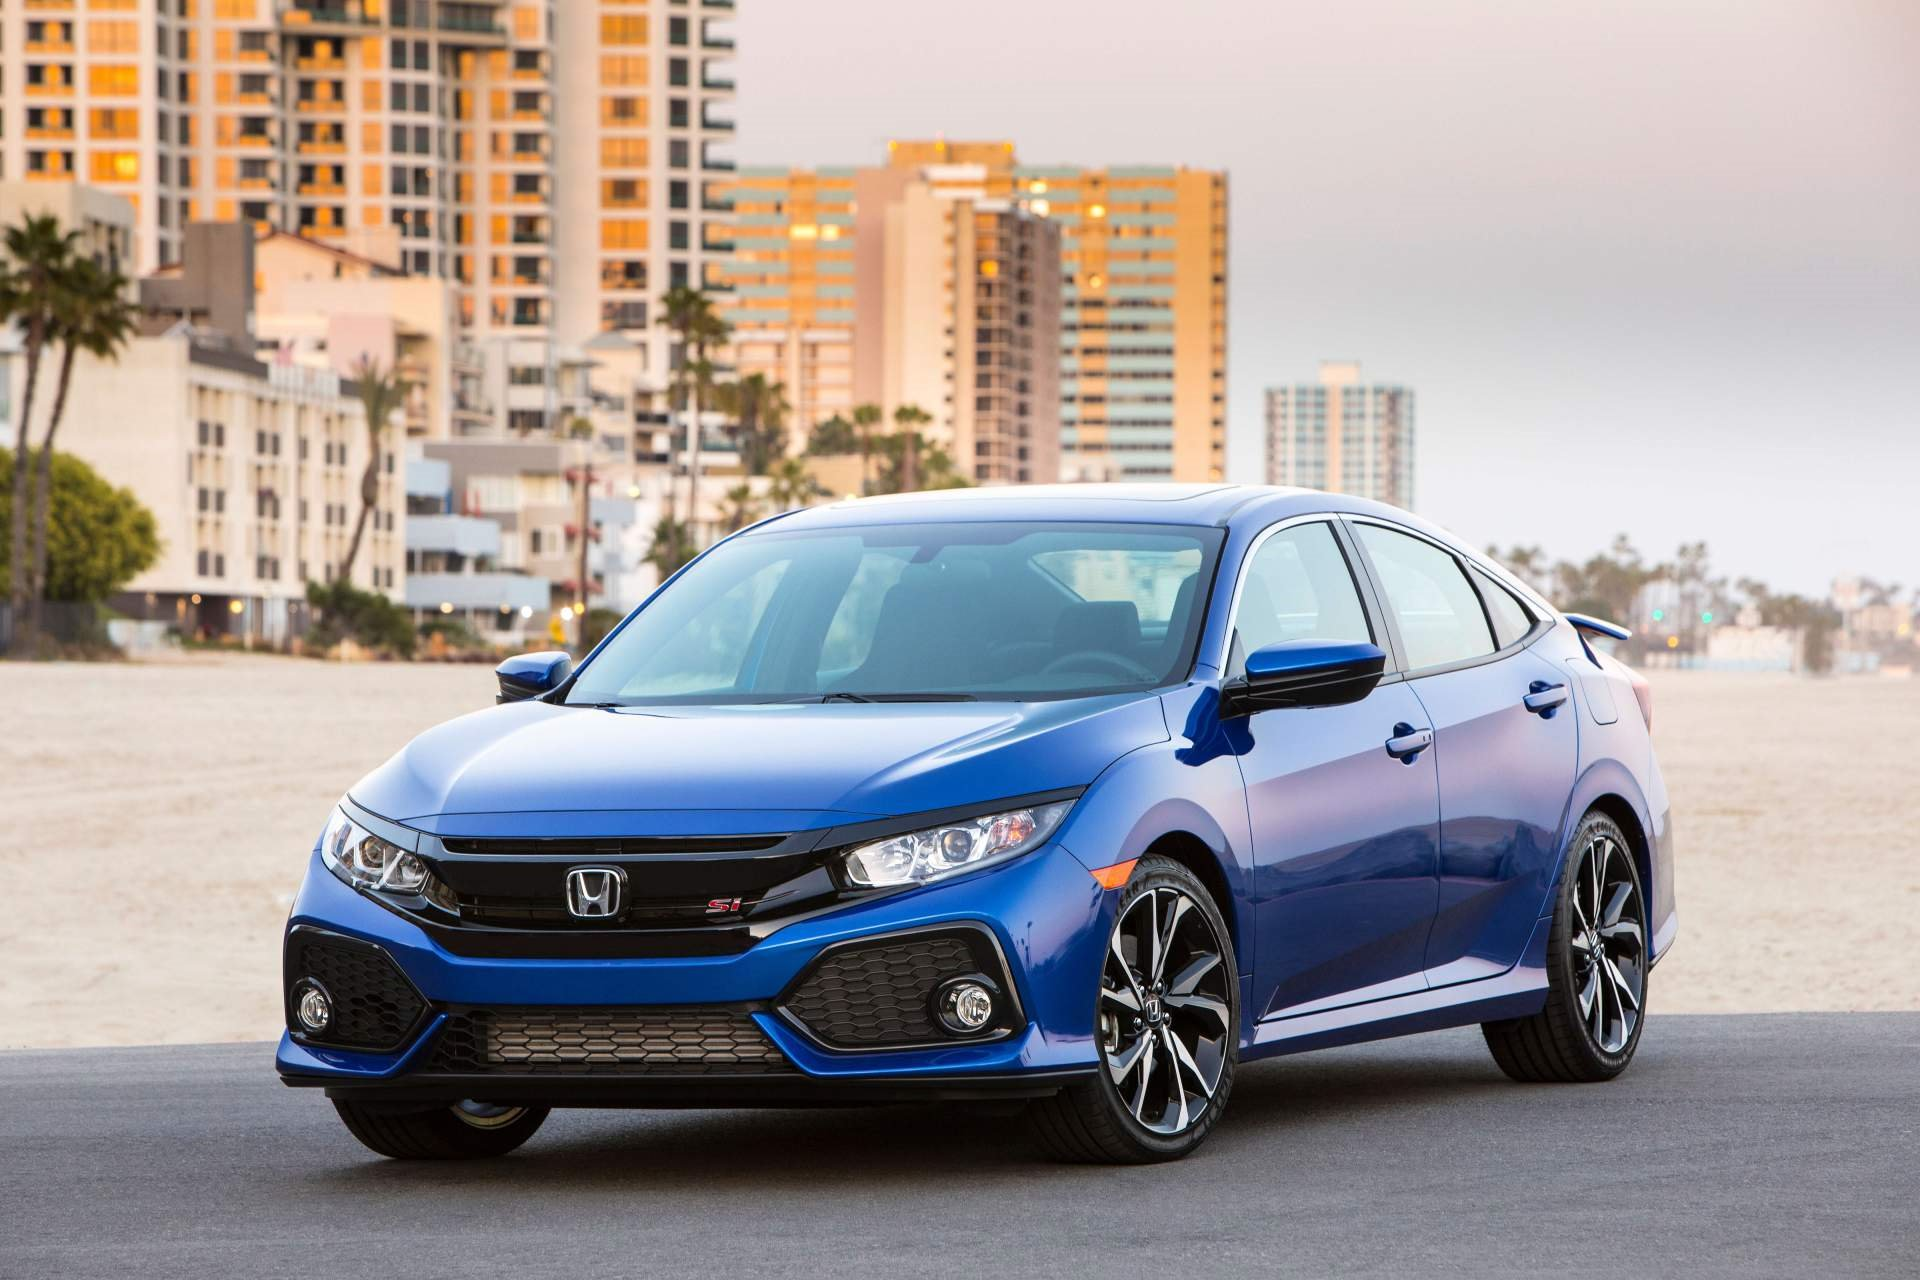 New 2019 Honda Civic EX Sedan for sale $23,750 at M and V Leasing in Brooklyn NY 11223 1